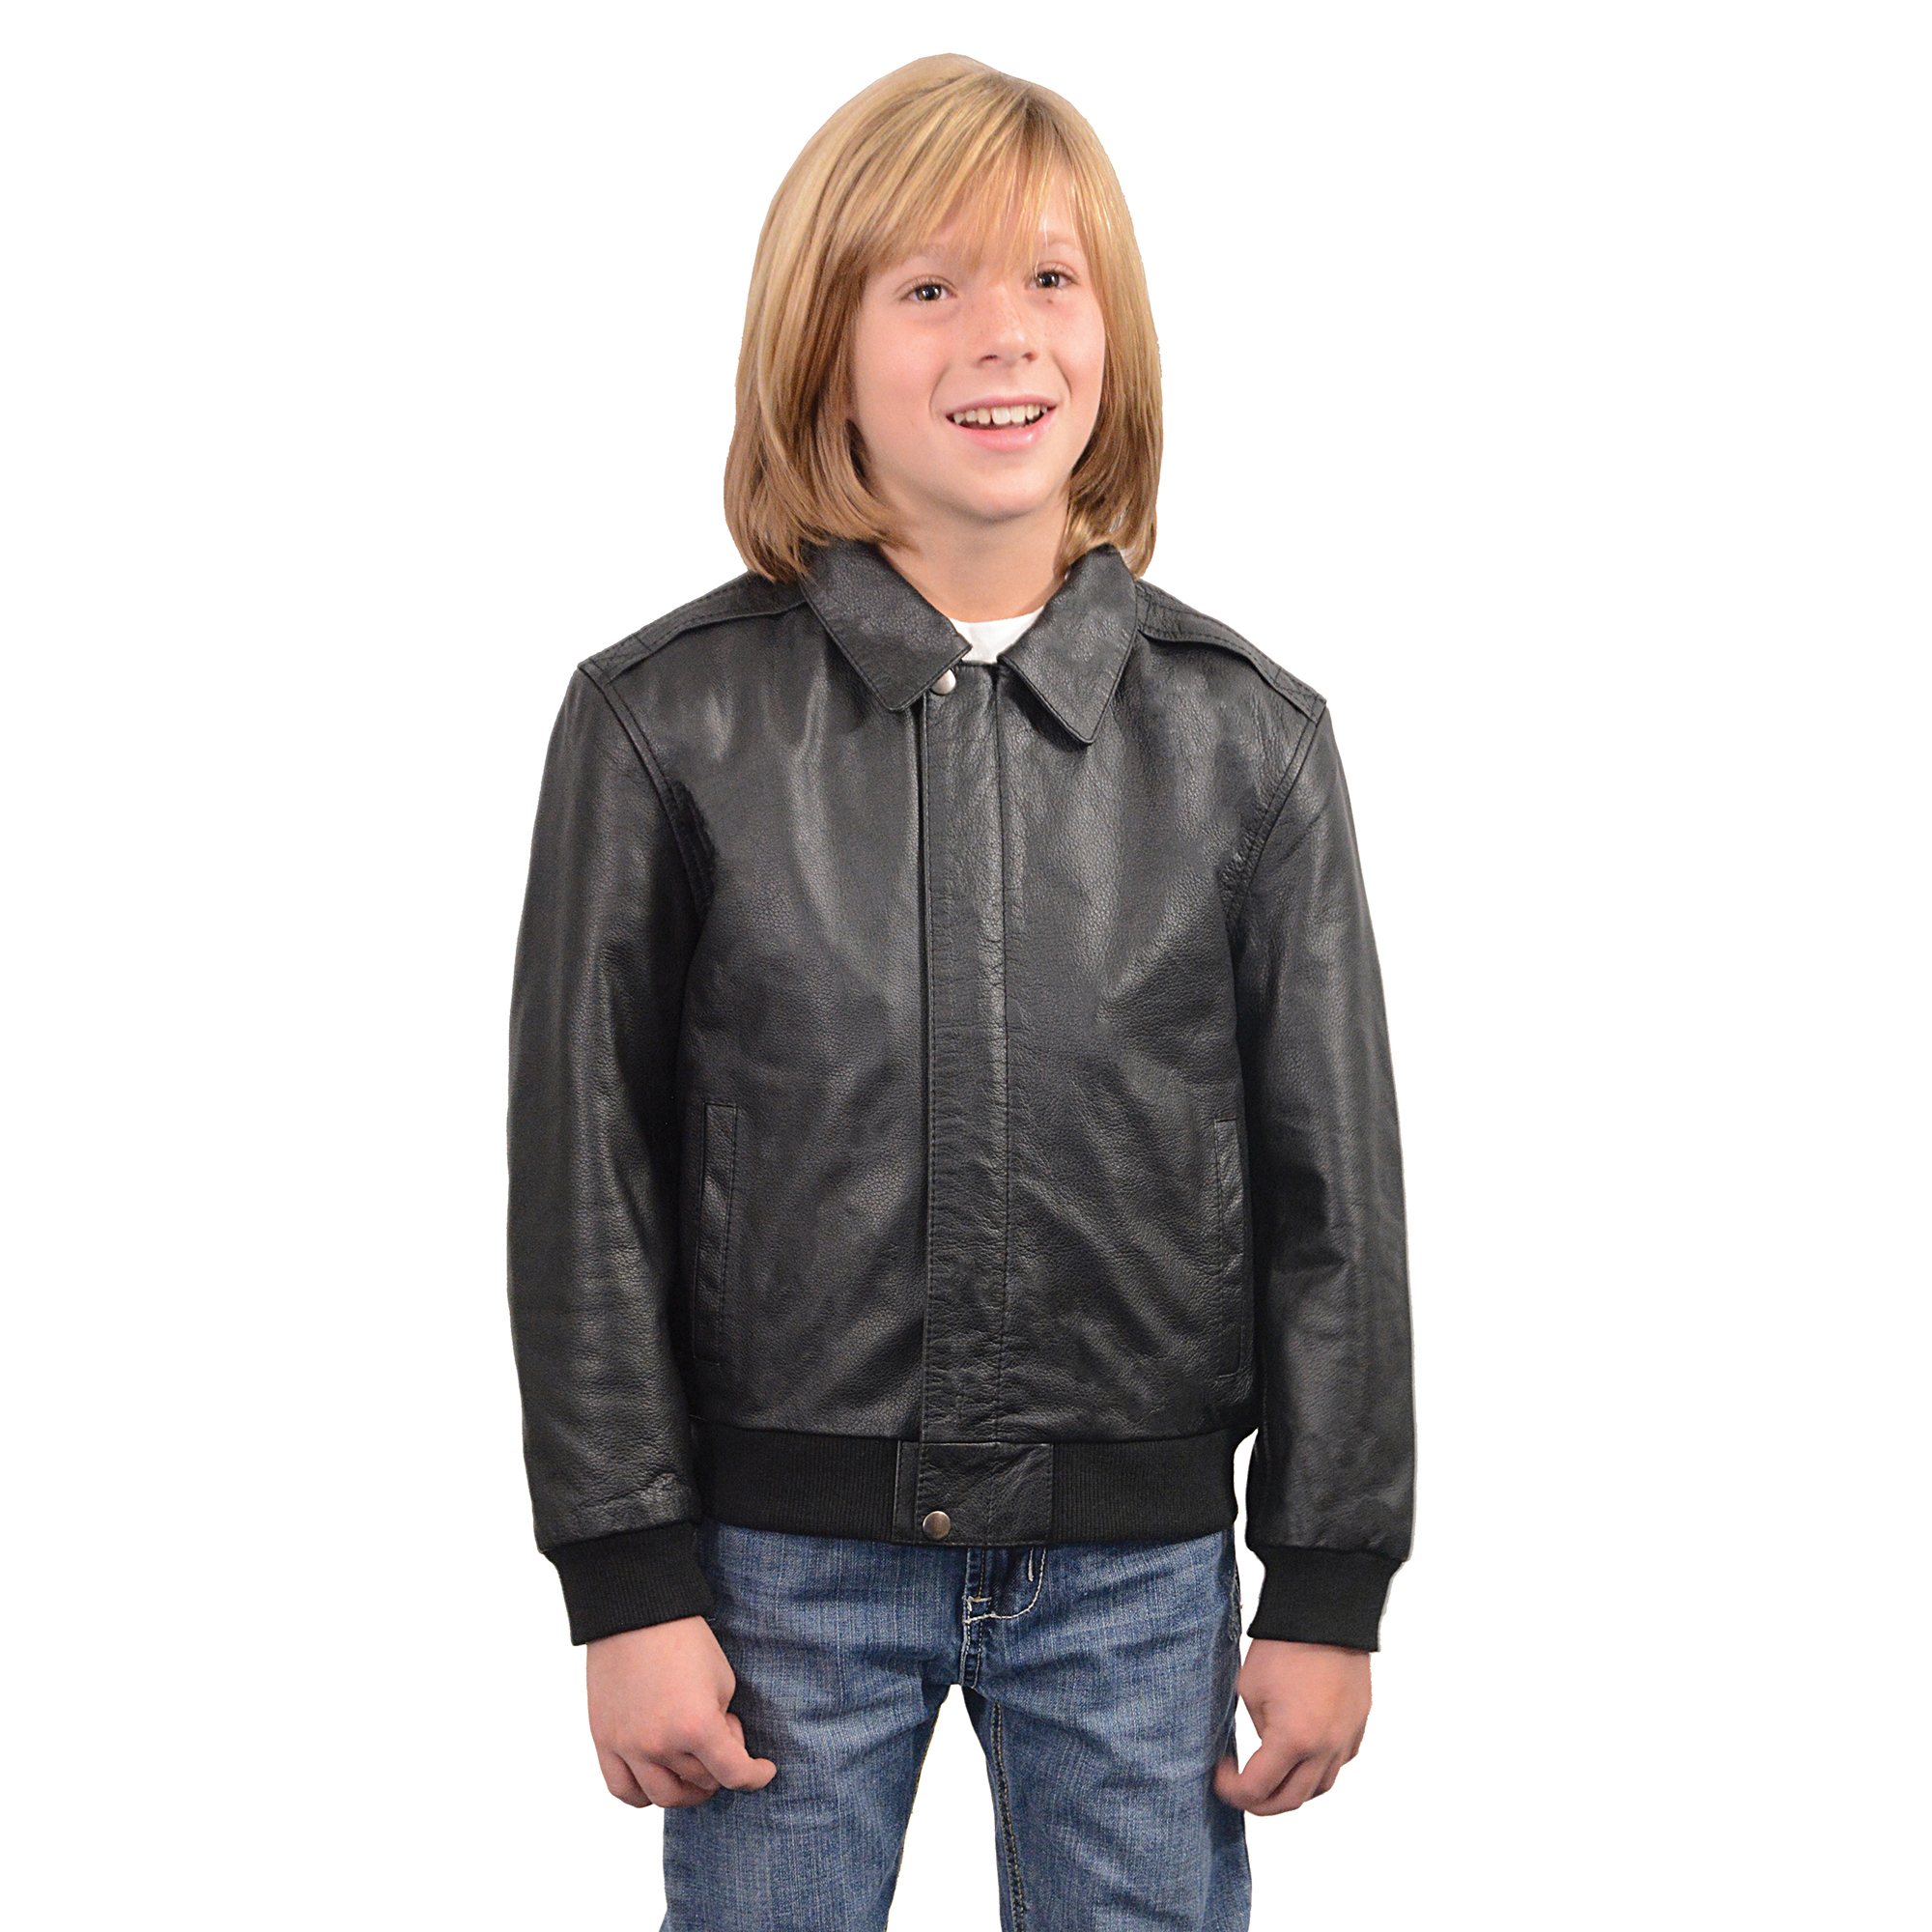 Find great deals on eBay for boys leather vest. Shop with confidence.